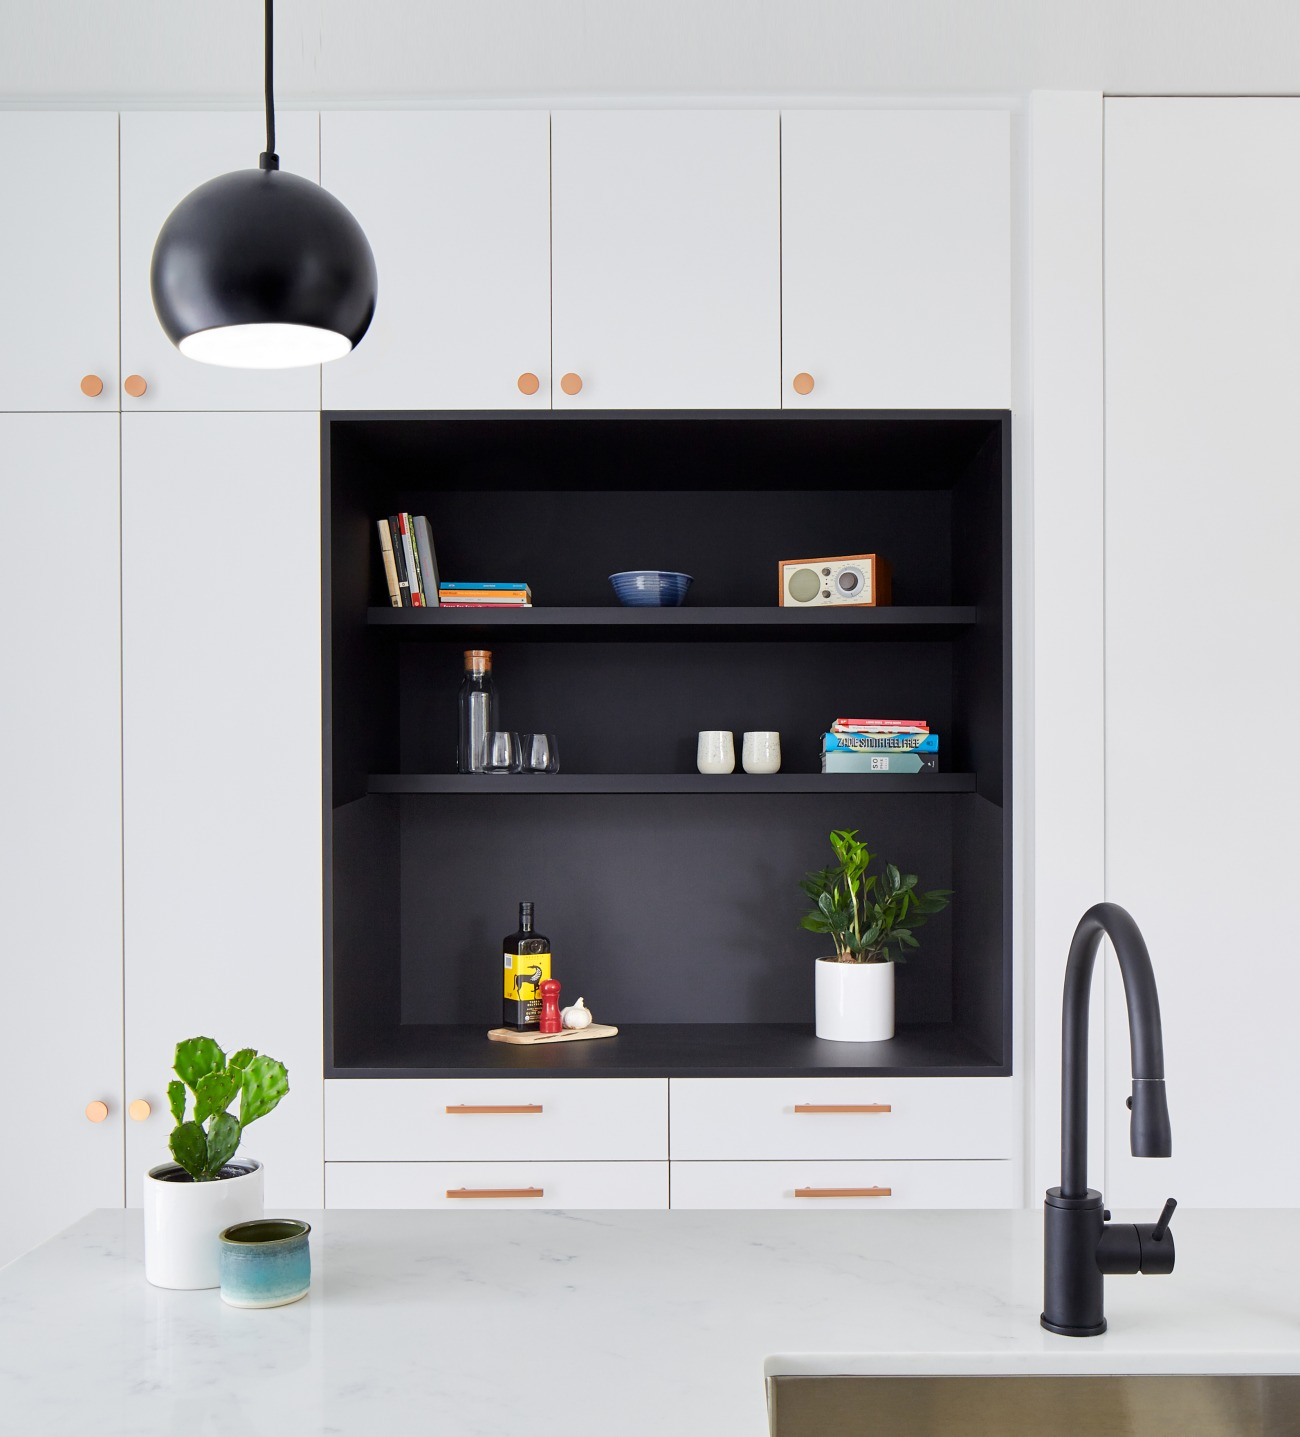 Copper finishes warm the high-contrast kitchen. Pendants from EQ3; hardware from Schoolhouse Electric and CB2; Rubinet faucet.